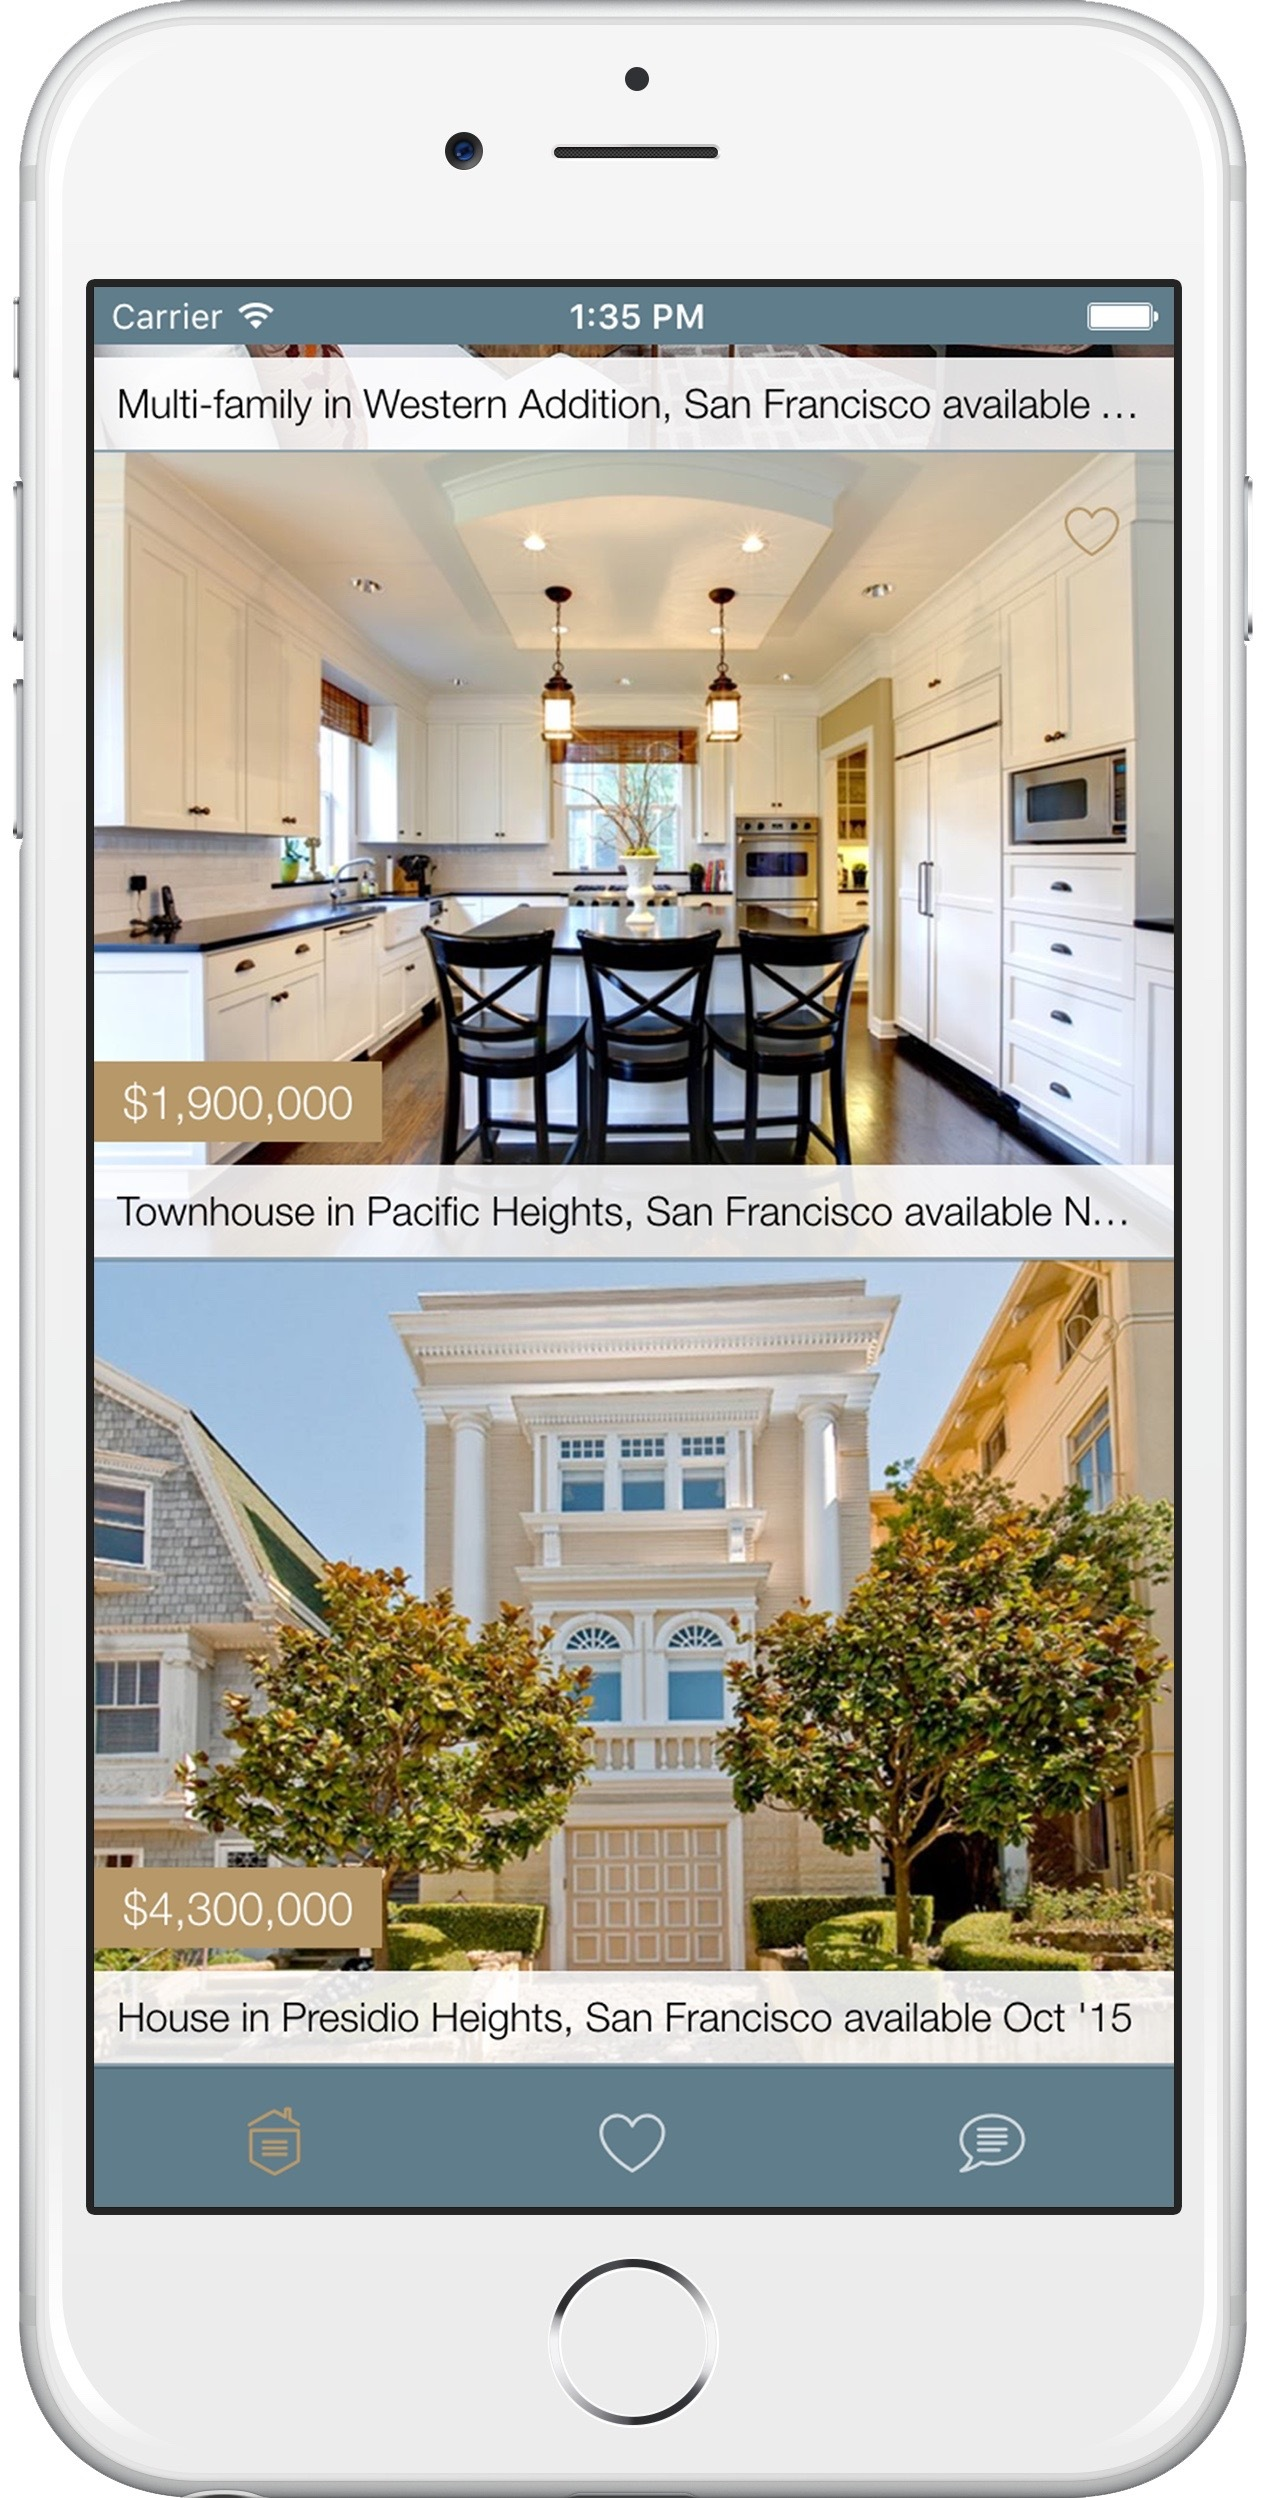 PocketList's private real estate marketplace connects homebuyers with non-publicly available properties for sale. (Photo: Business Wire)